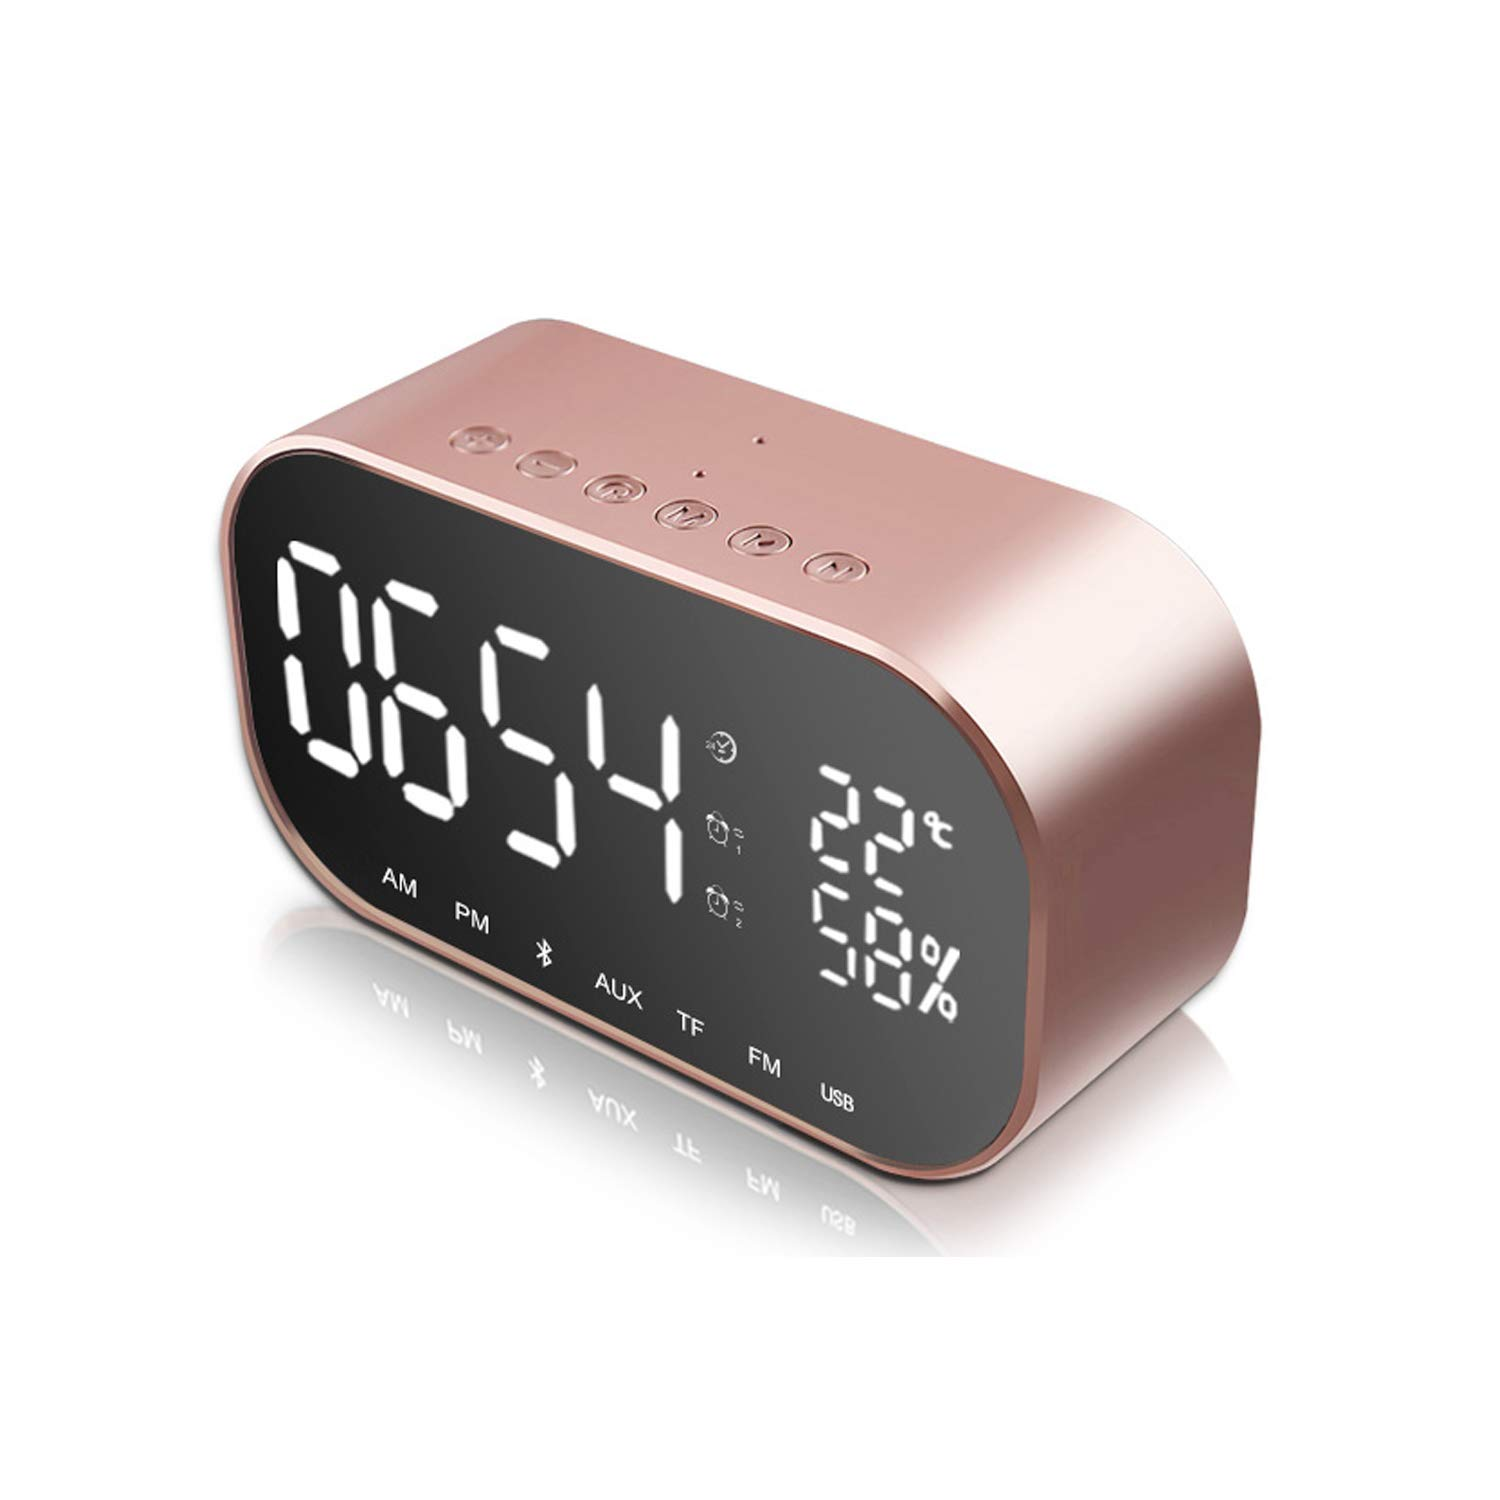 JIM'S STORE Alarm Clock Radio Bluetooth Speaker, Digital Clocks Bedside with Thermometer, Dimmable LED Display, Dual Alarm with Snooze, TF Card Slot, USB Charging Port, FM Radio/AUX-IN (Black) Jim's Stores